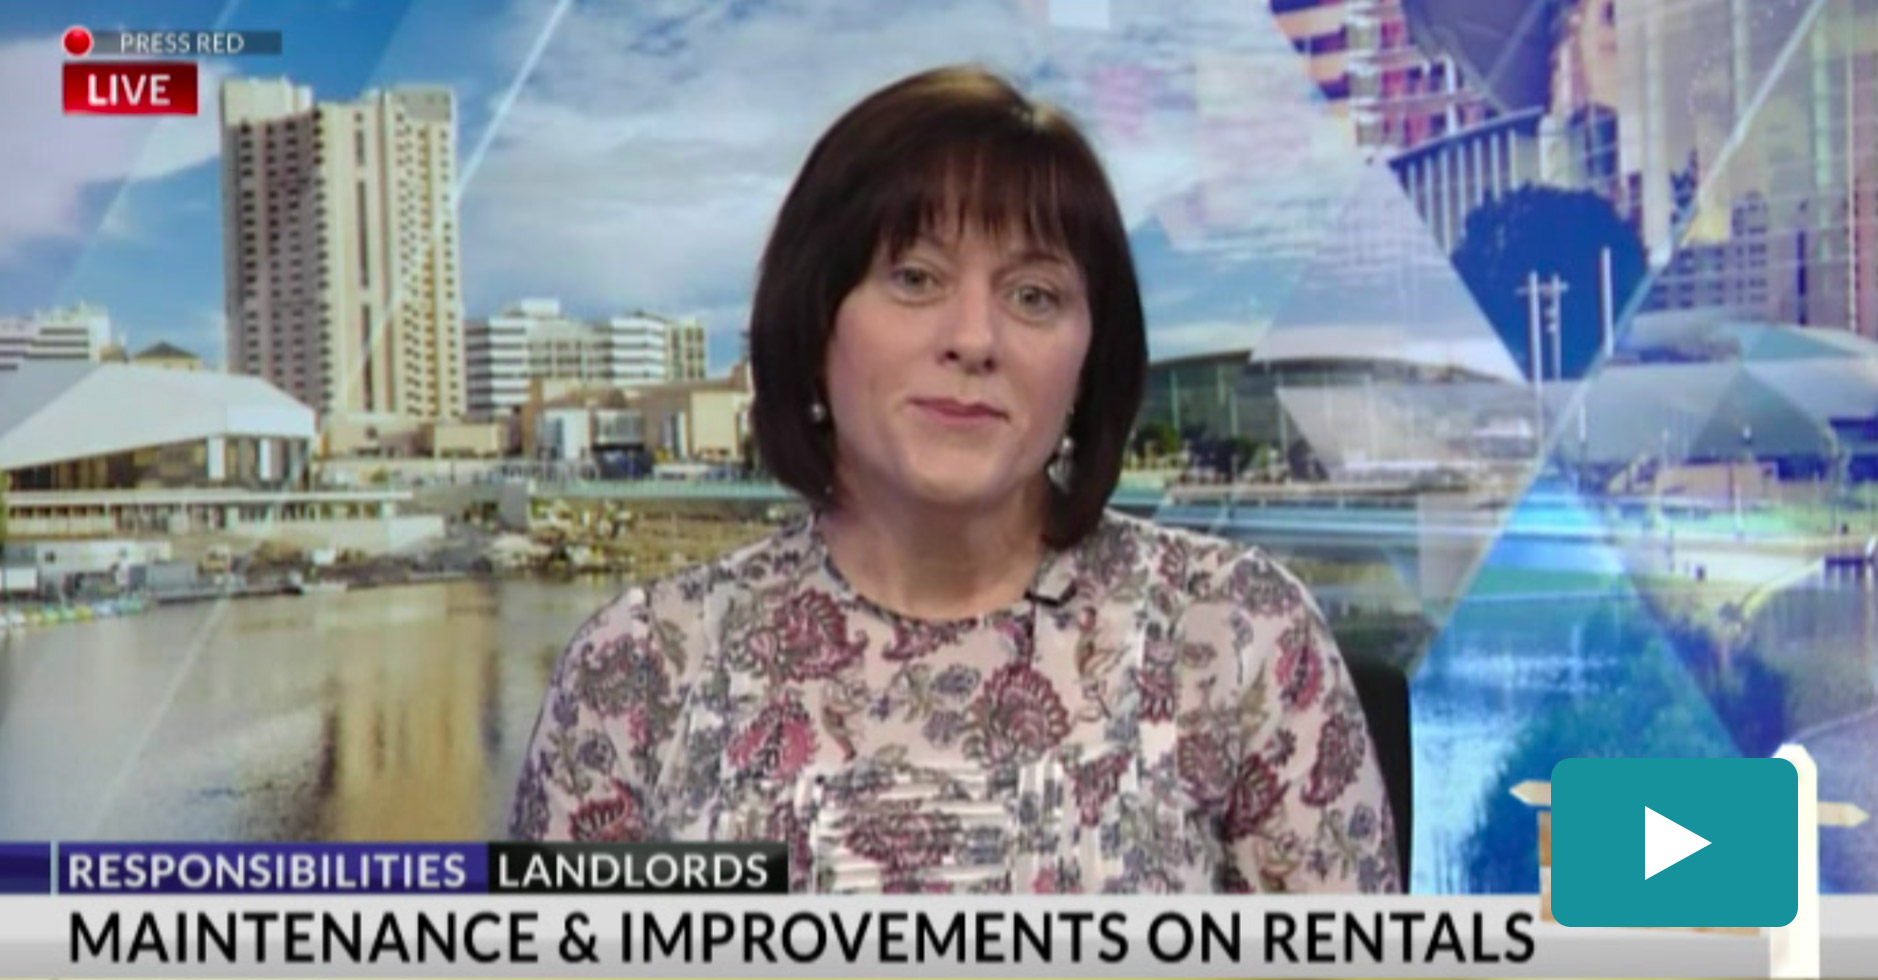 SkyNews LandlordResponsibilities Play How To: Rental Property Inspections